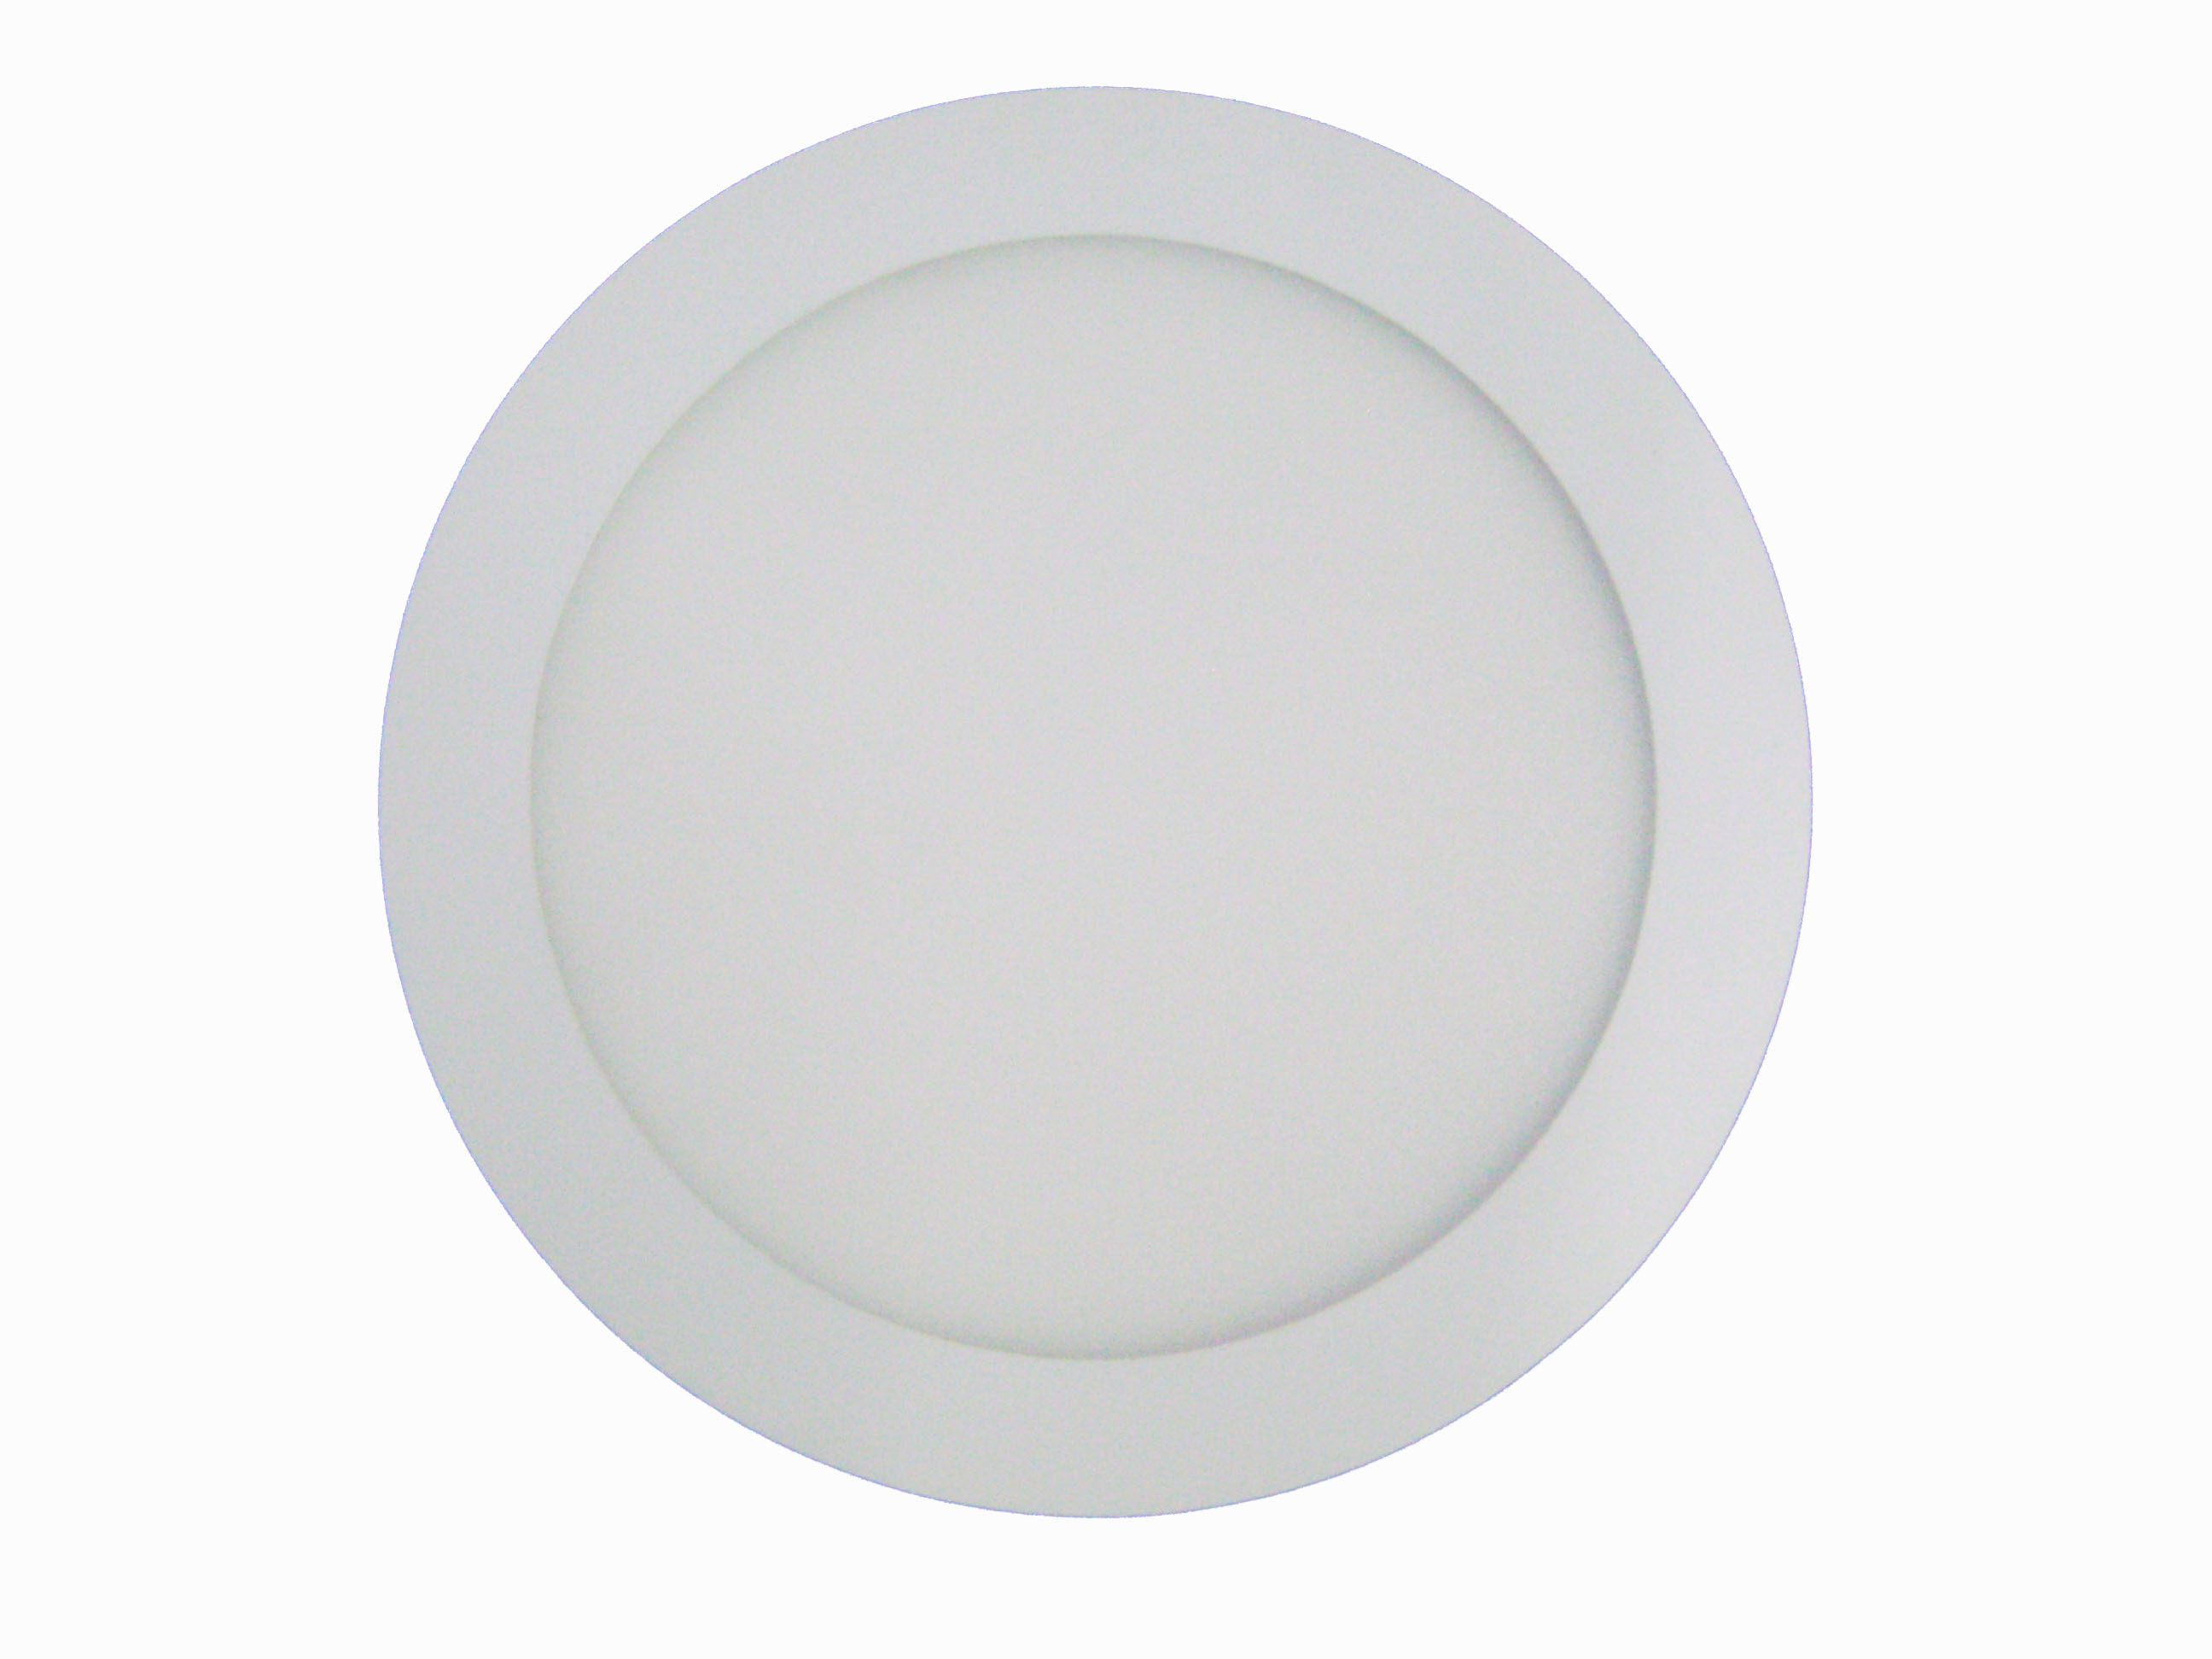 30 W ROUND PANEL BACK LIGHT